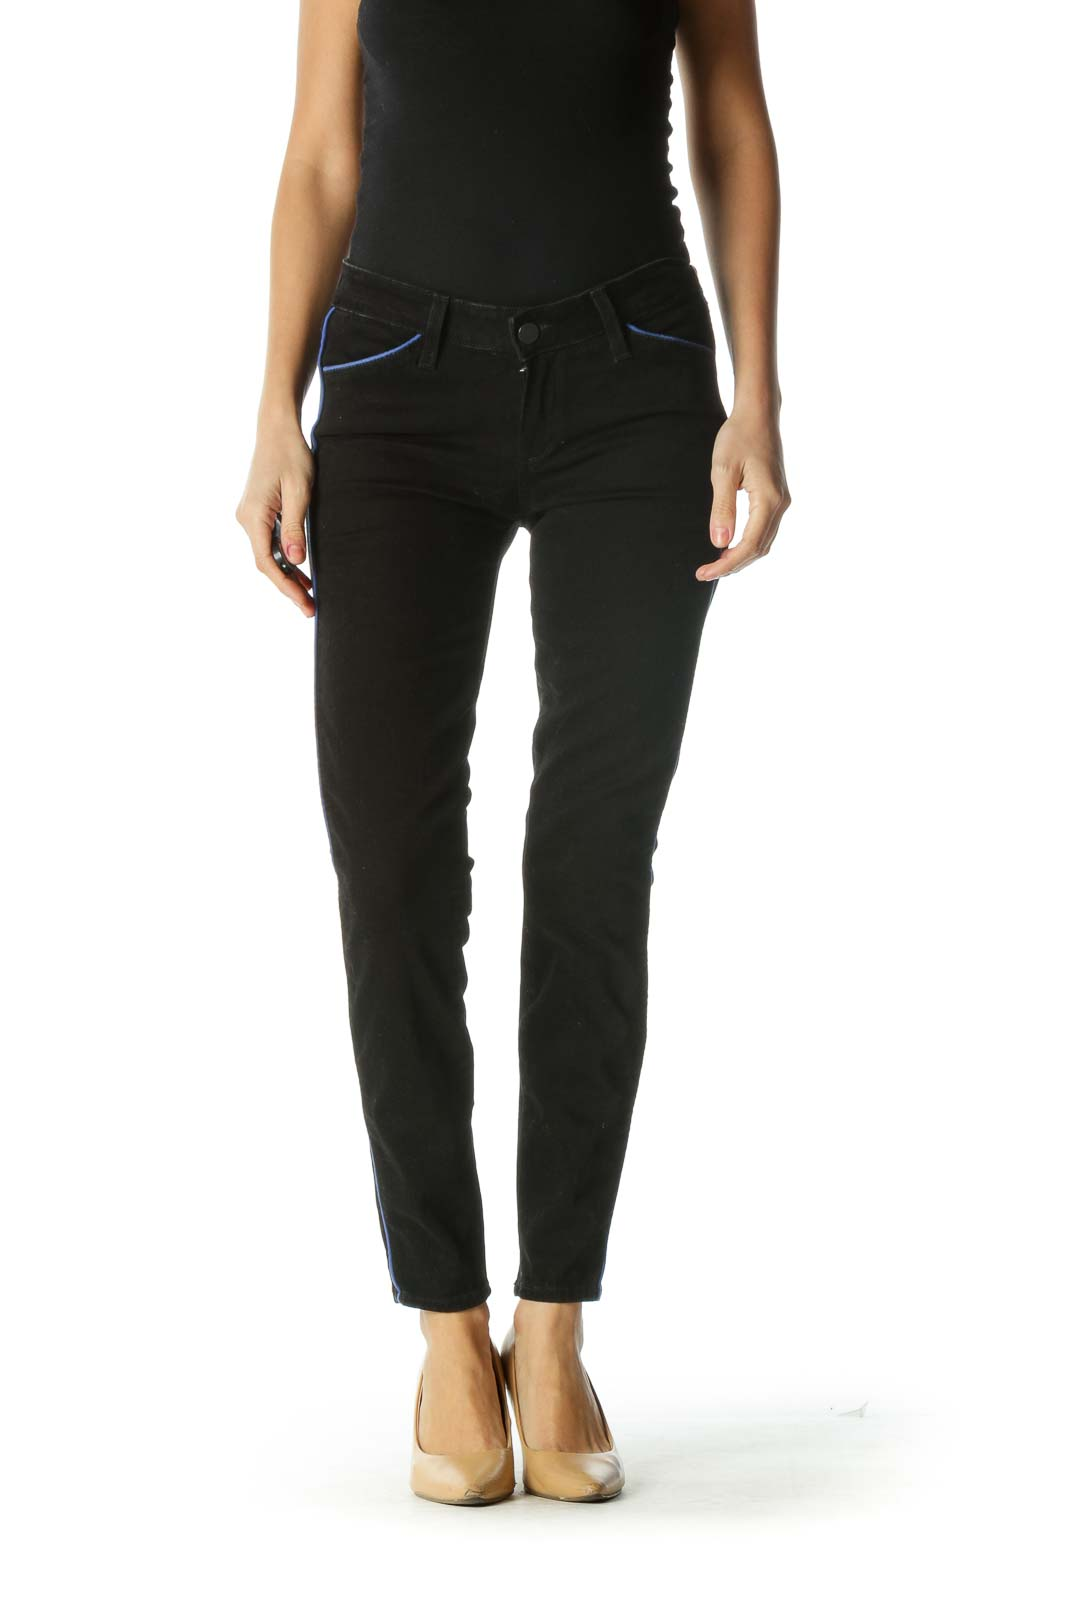 Black and Blue Striped Skinny Jeans Front